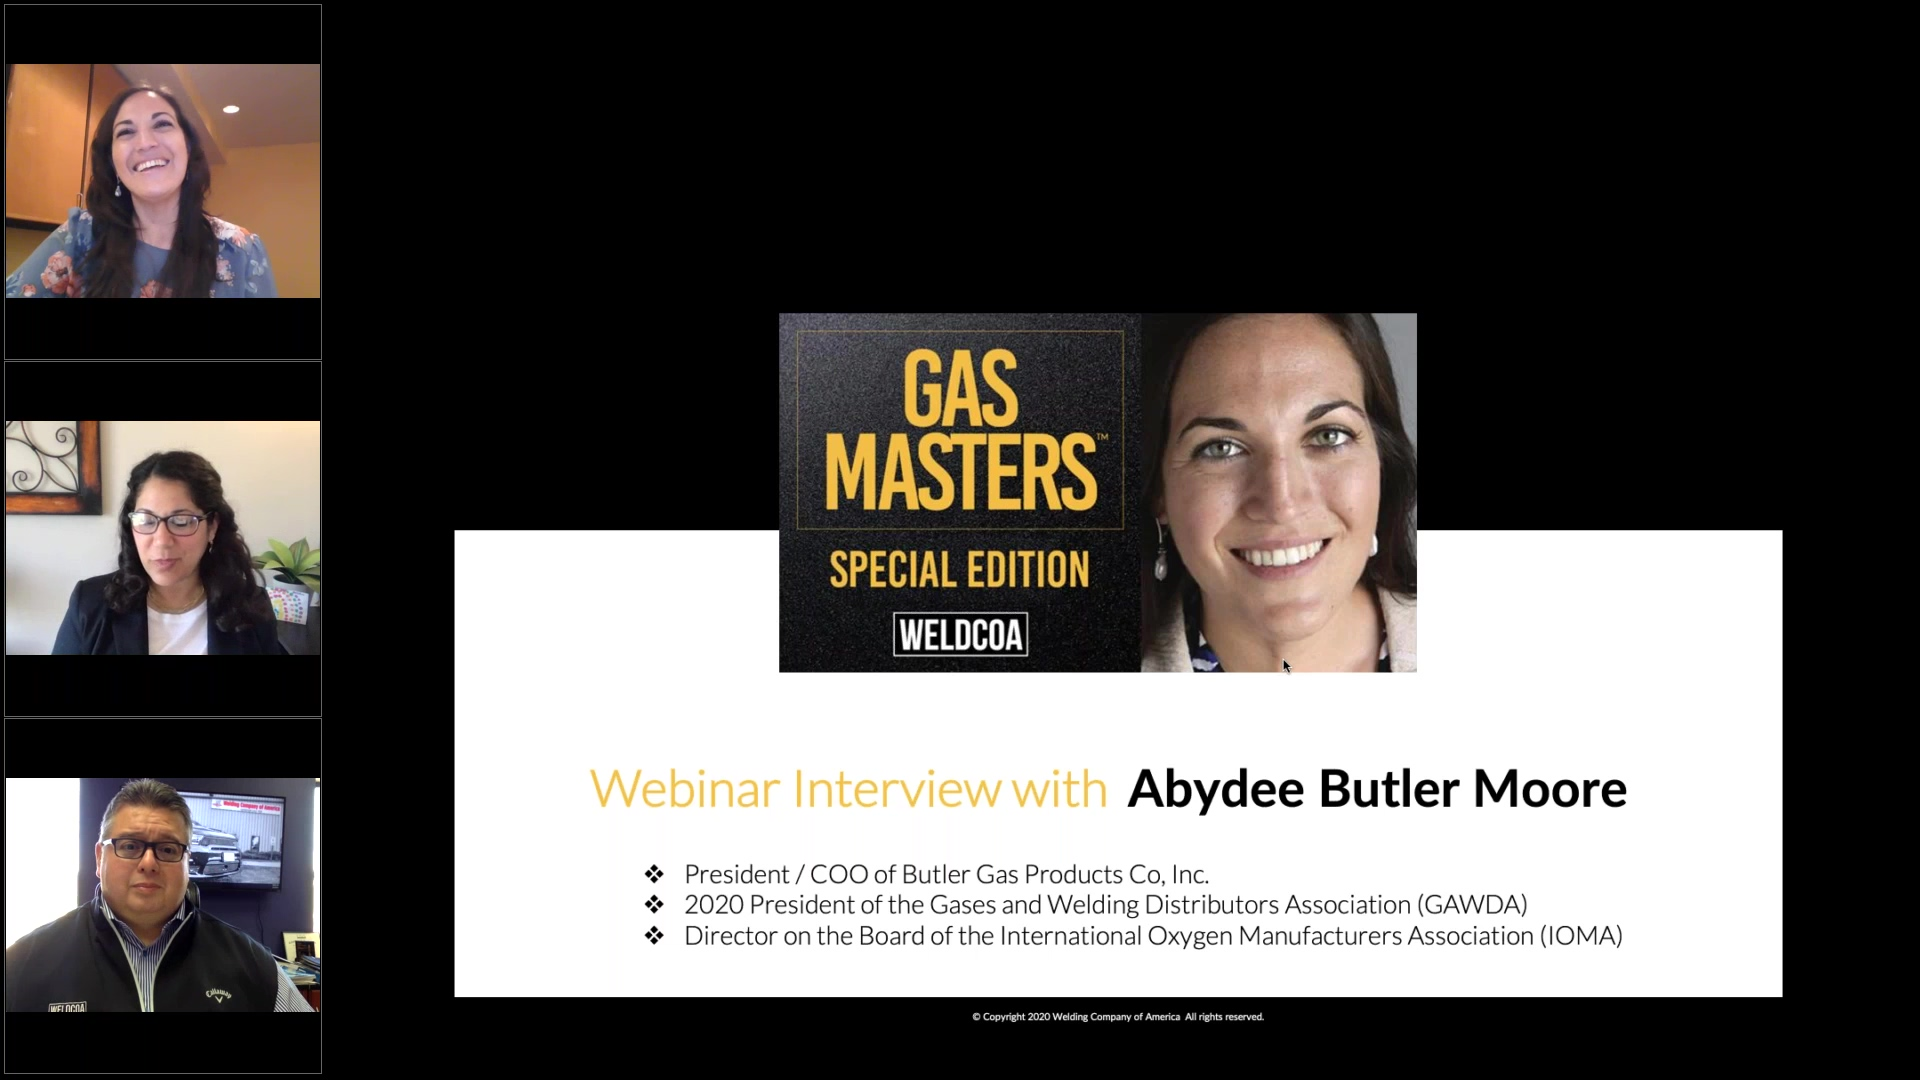 Special Edition Interview with Abydee Butler Moore